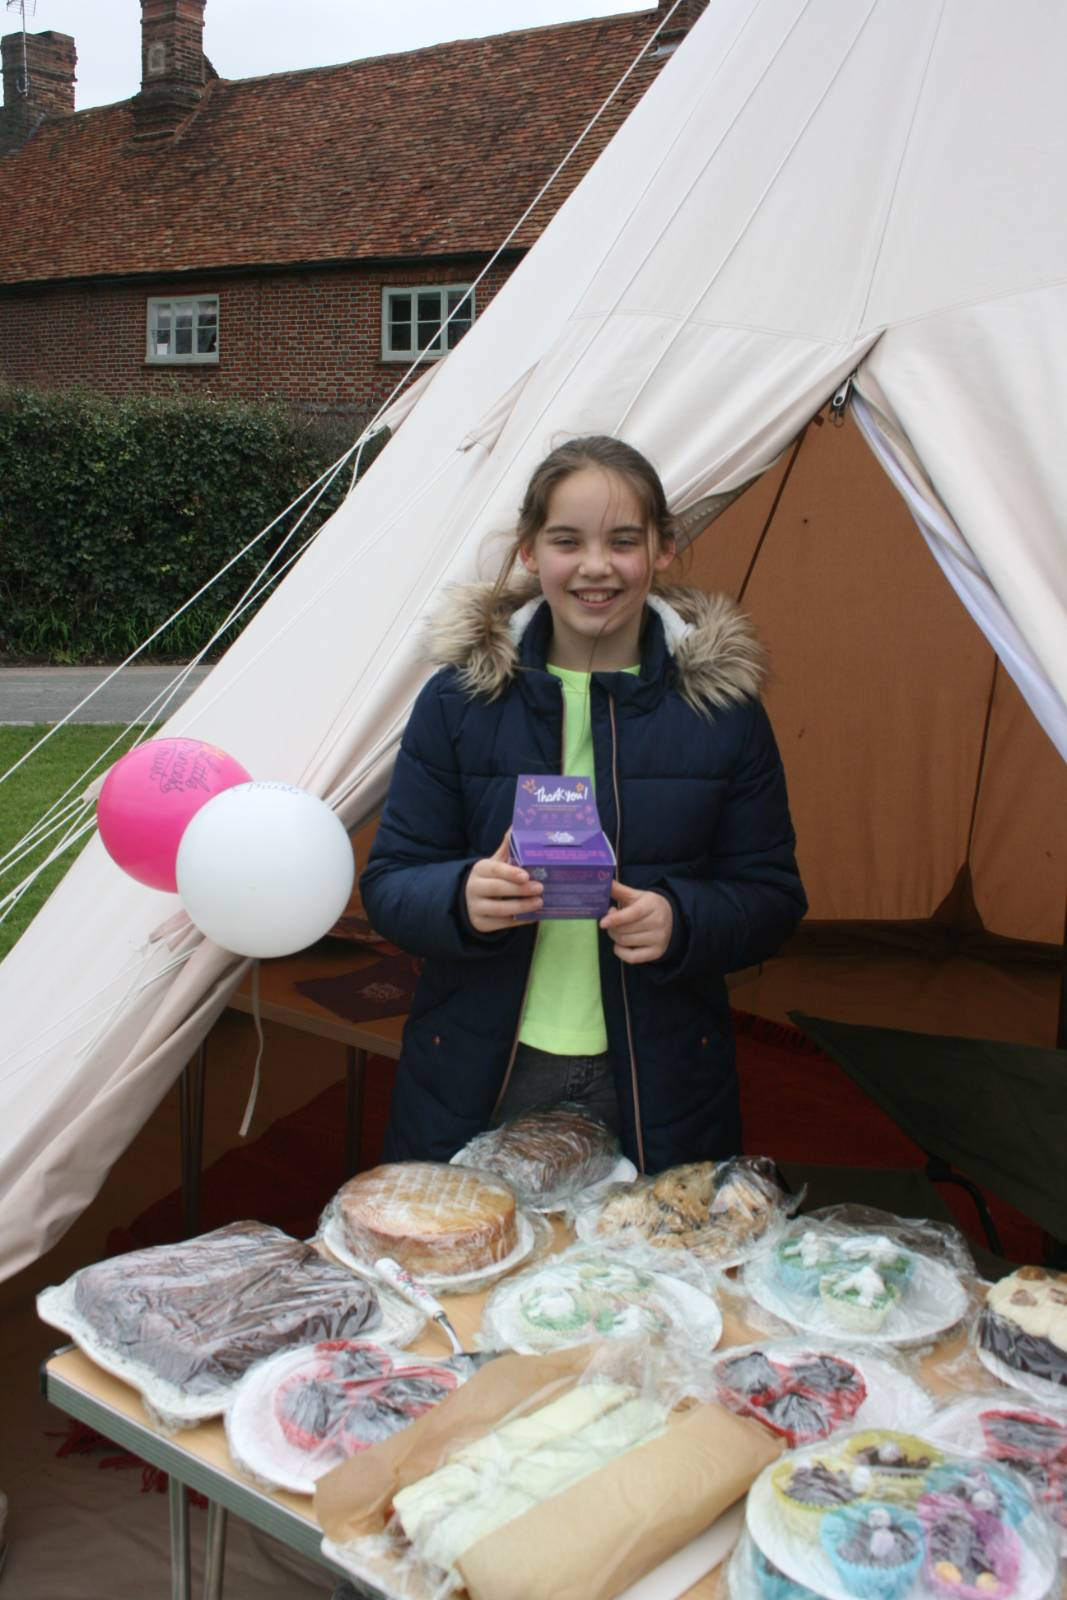 12 year old Rose R. raised £371 via a cake sale and family donations on 3rd April 2021